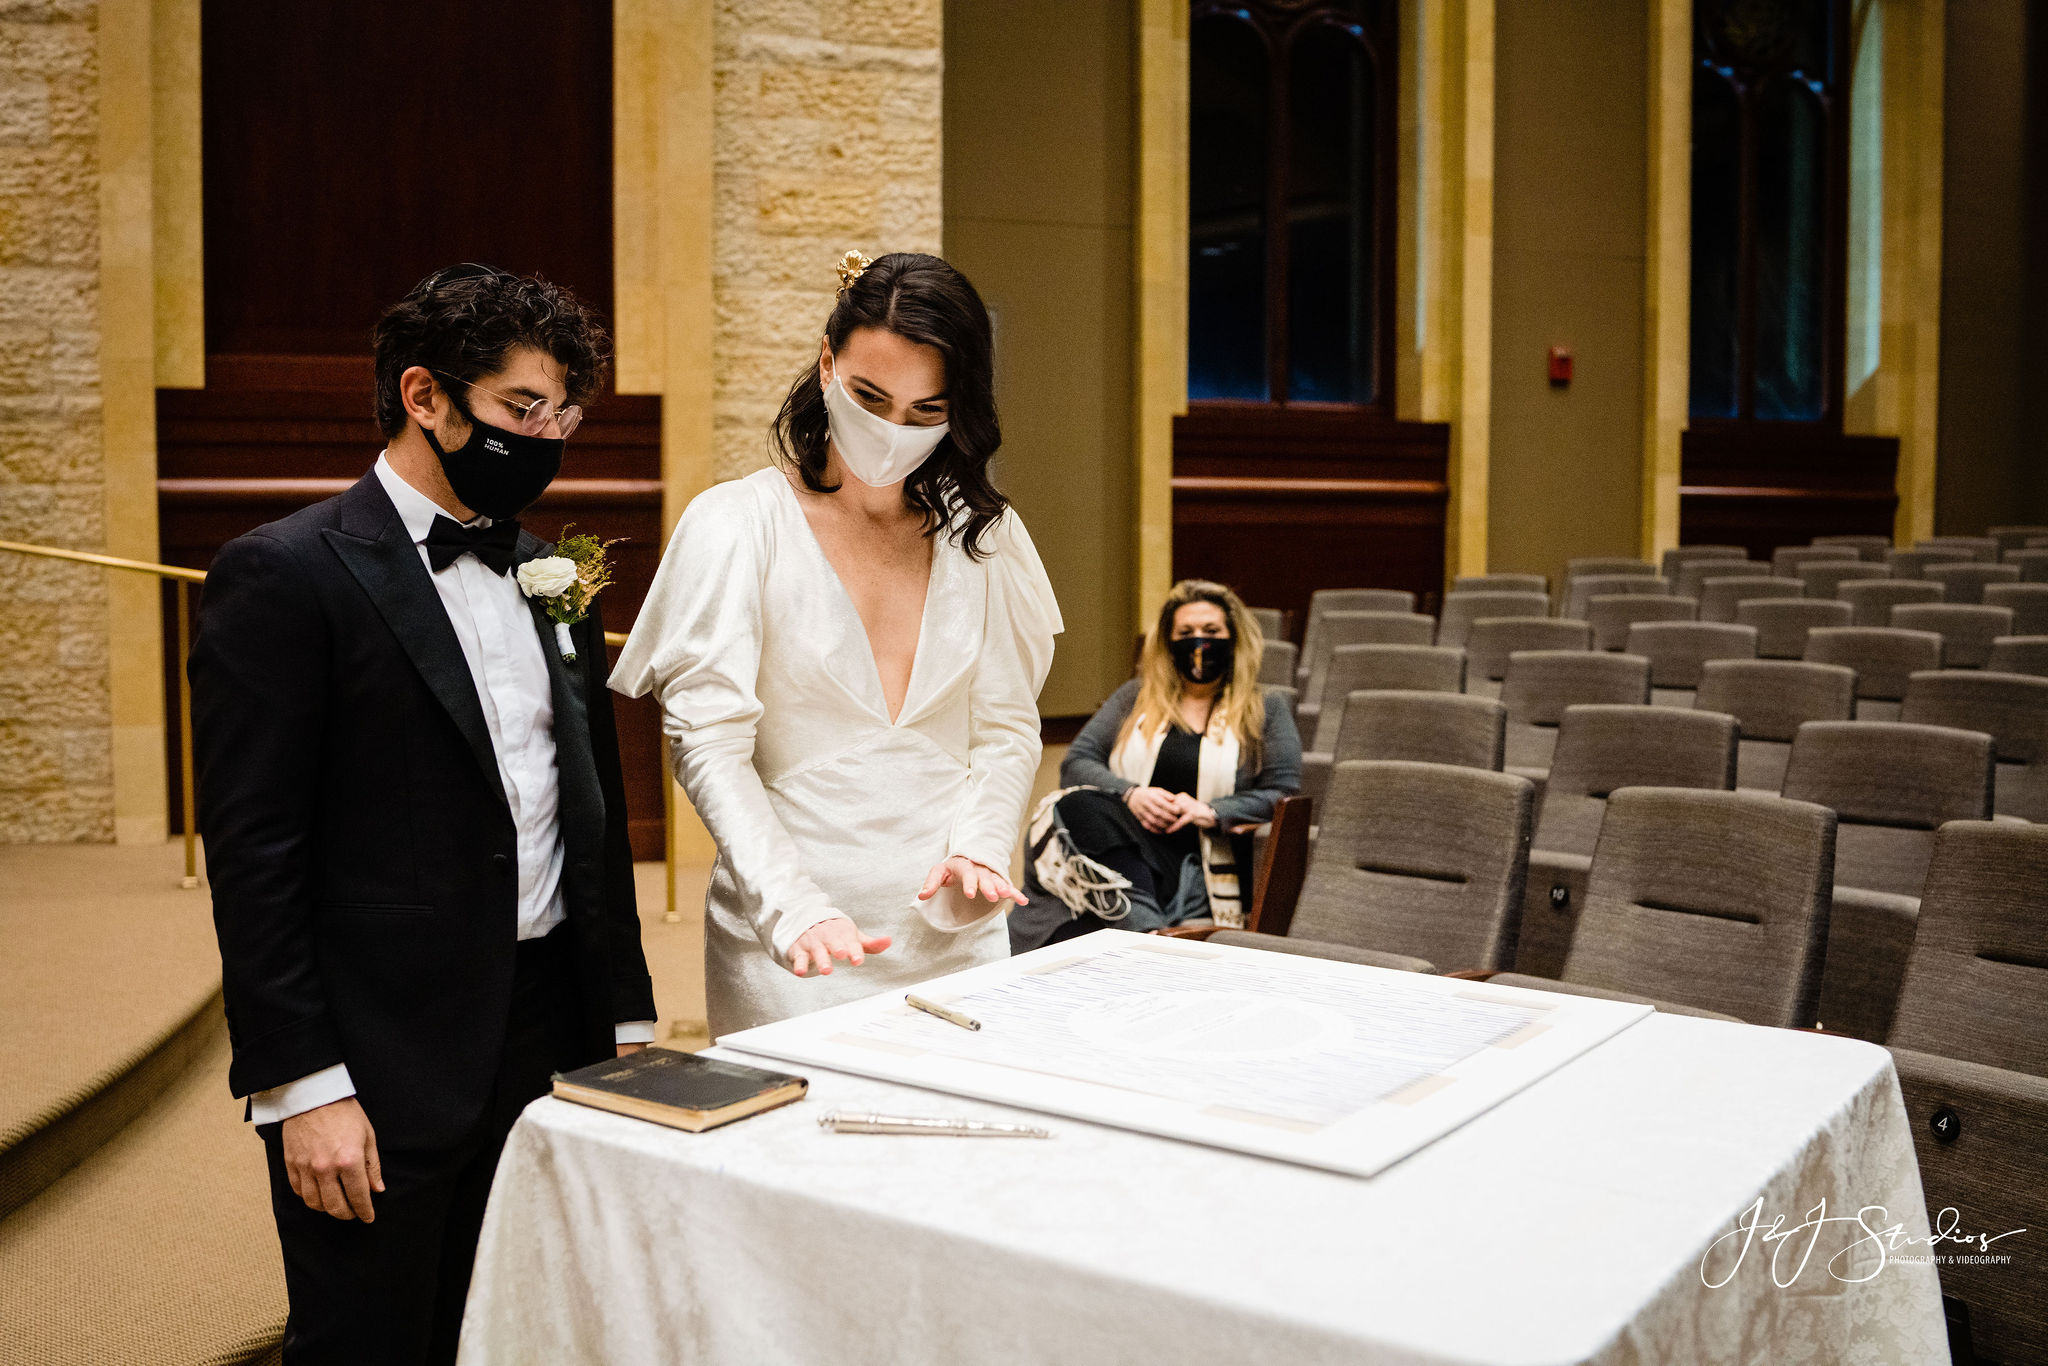 Signing Jewish legal marriage documents